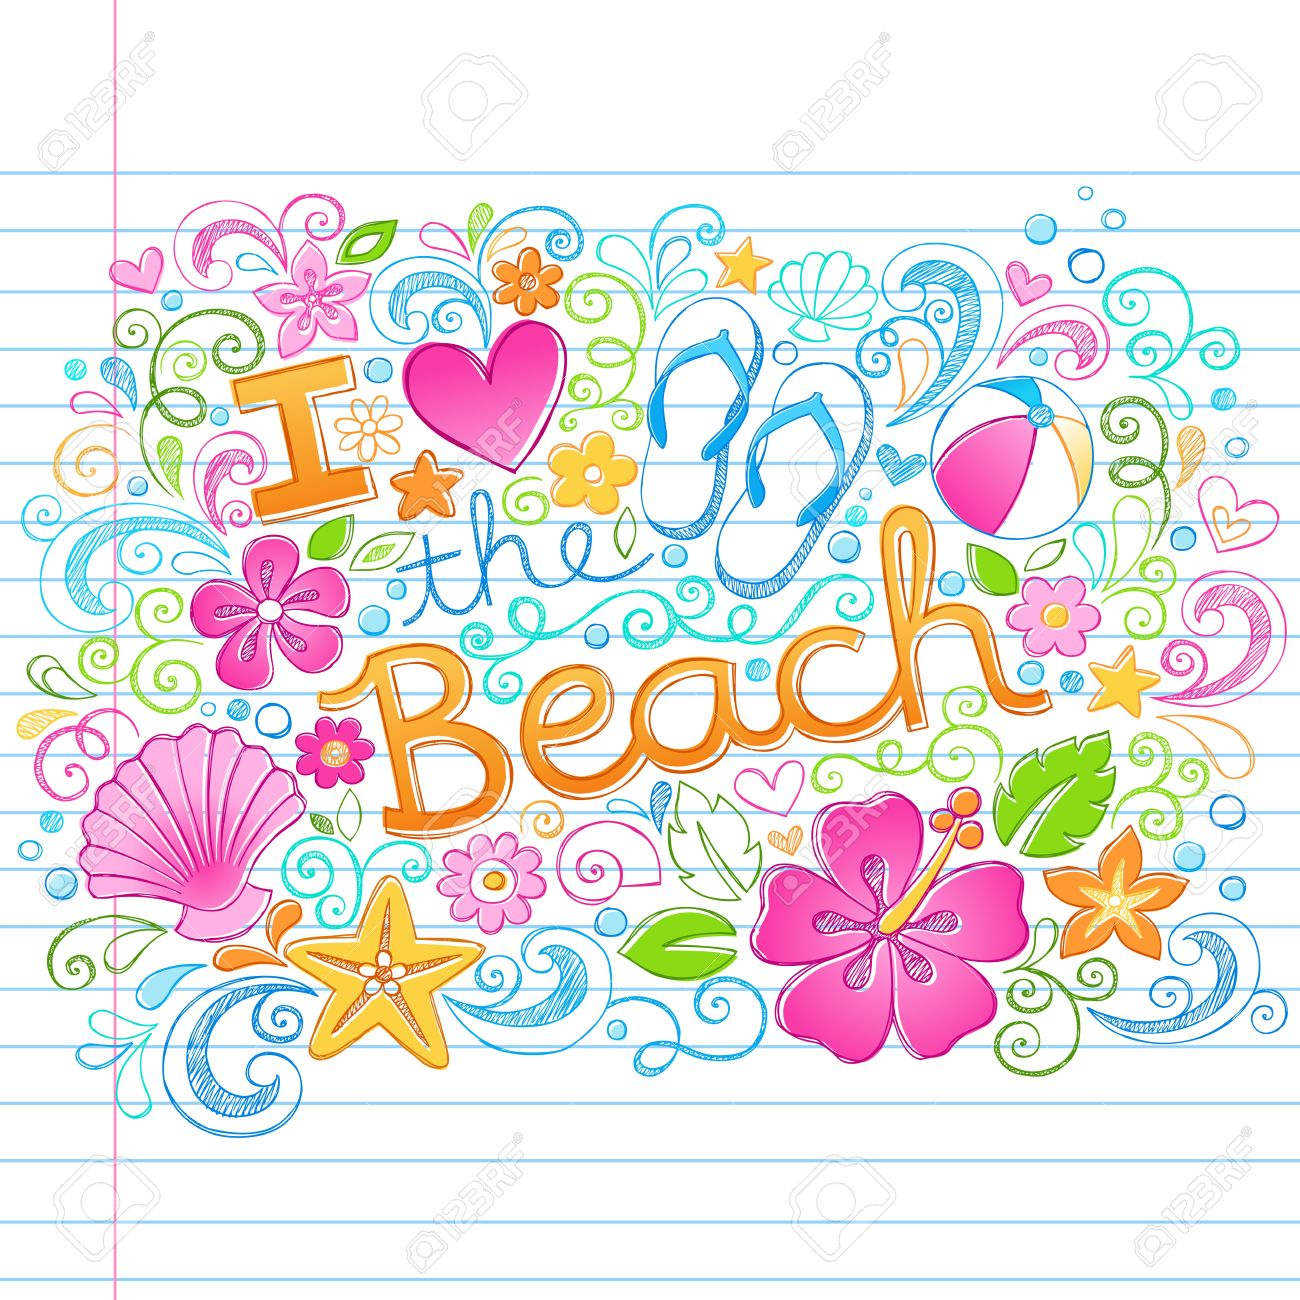 I Love the Beach Tropical Summer Vacation Sketchy Notebook Doodles with Hibiscus Flower, Flip-Flops, and Sea shells- Hand Drawn Illustration on Lined Sketchbook Paper Background Stock Vector - 20364022